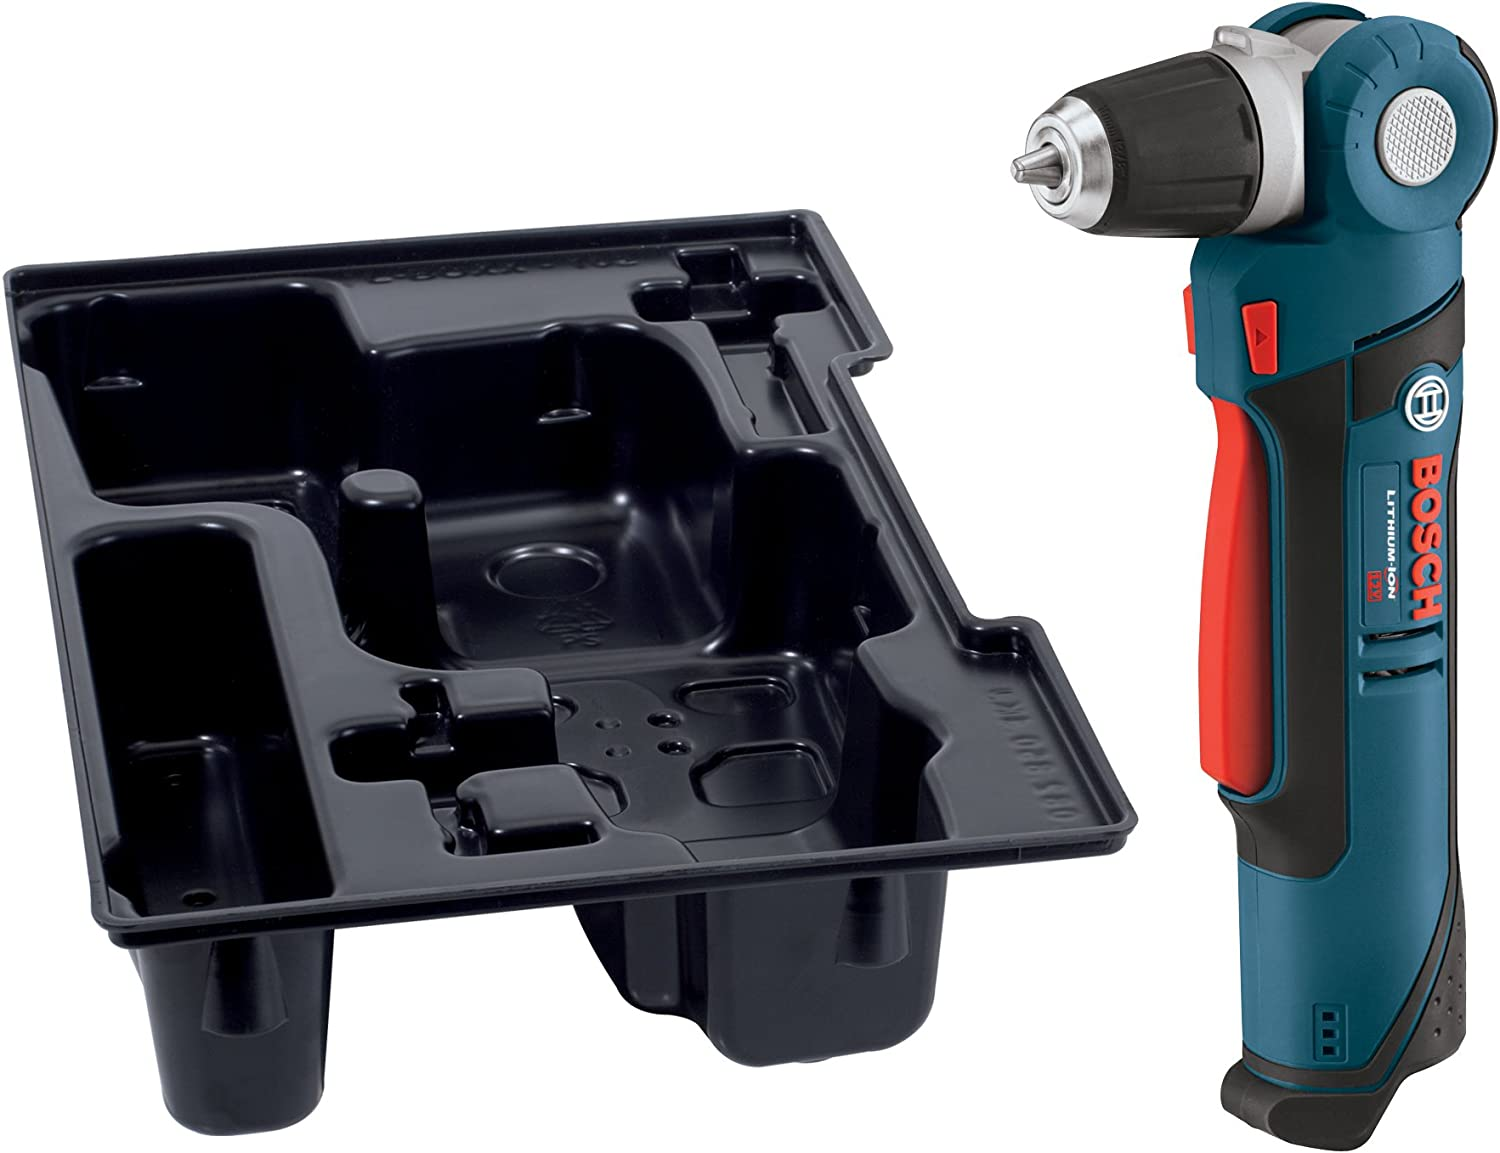 BOSCH PS11BN 12-Volt Max Lithium-Ion 3/8-Inch Right Angle Drill/Driver